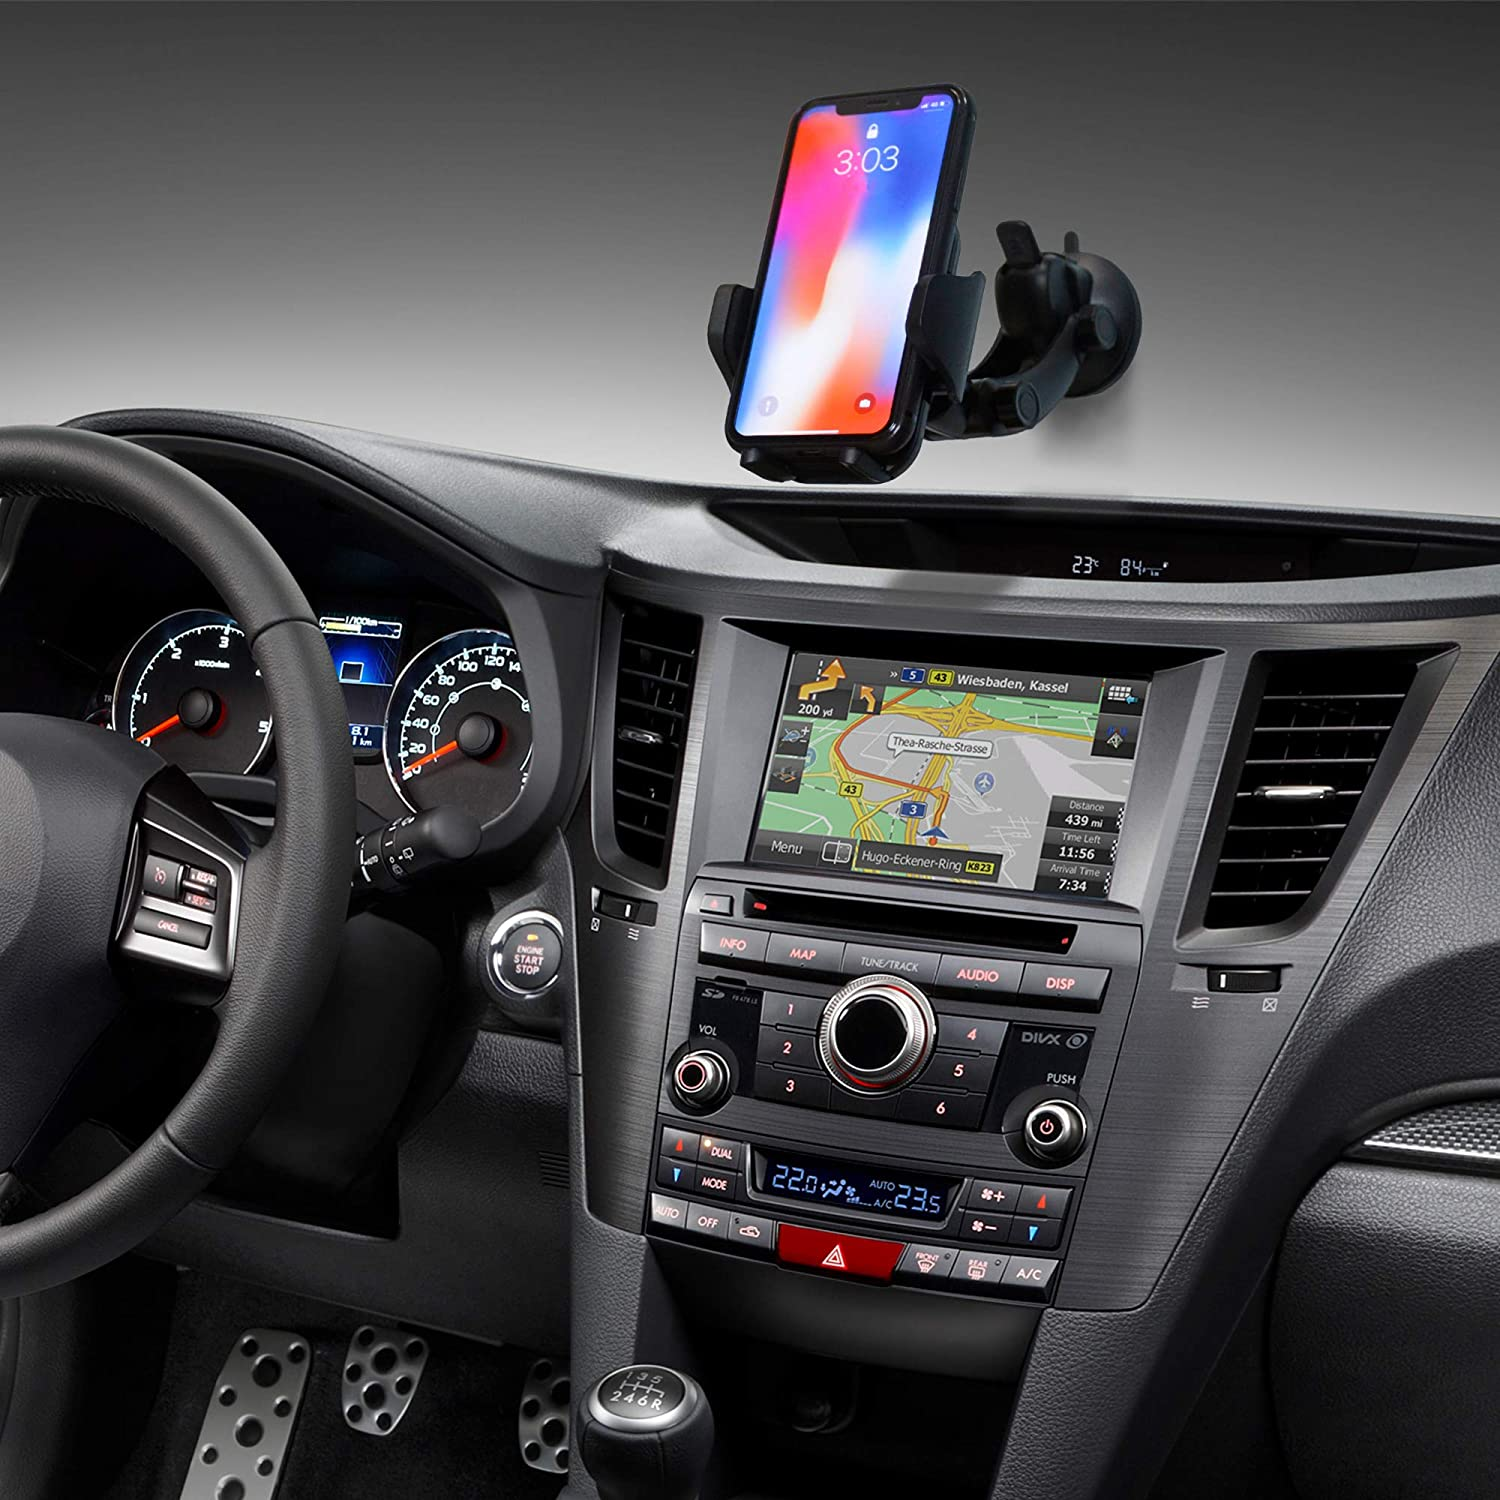 Black Galaxy S5//S6//S7//S8 TIDLAY Car Mount Holder Universal Phone Holder 360 Degree Rotation for iPhone X//8//8Plus//7//7Plus//6s//6Plus//5S LG Car Stand and More Google Nexus